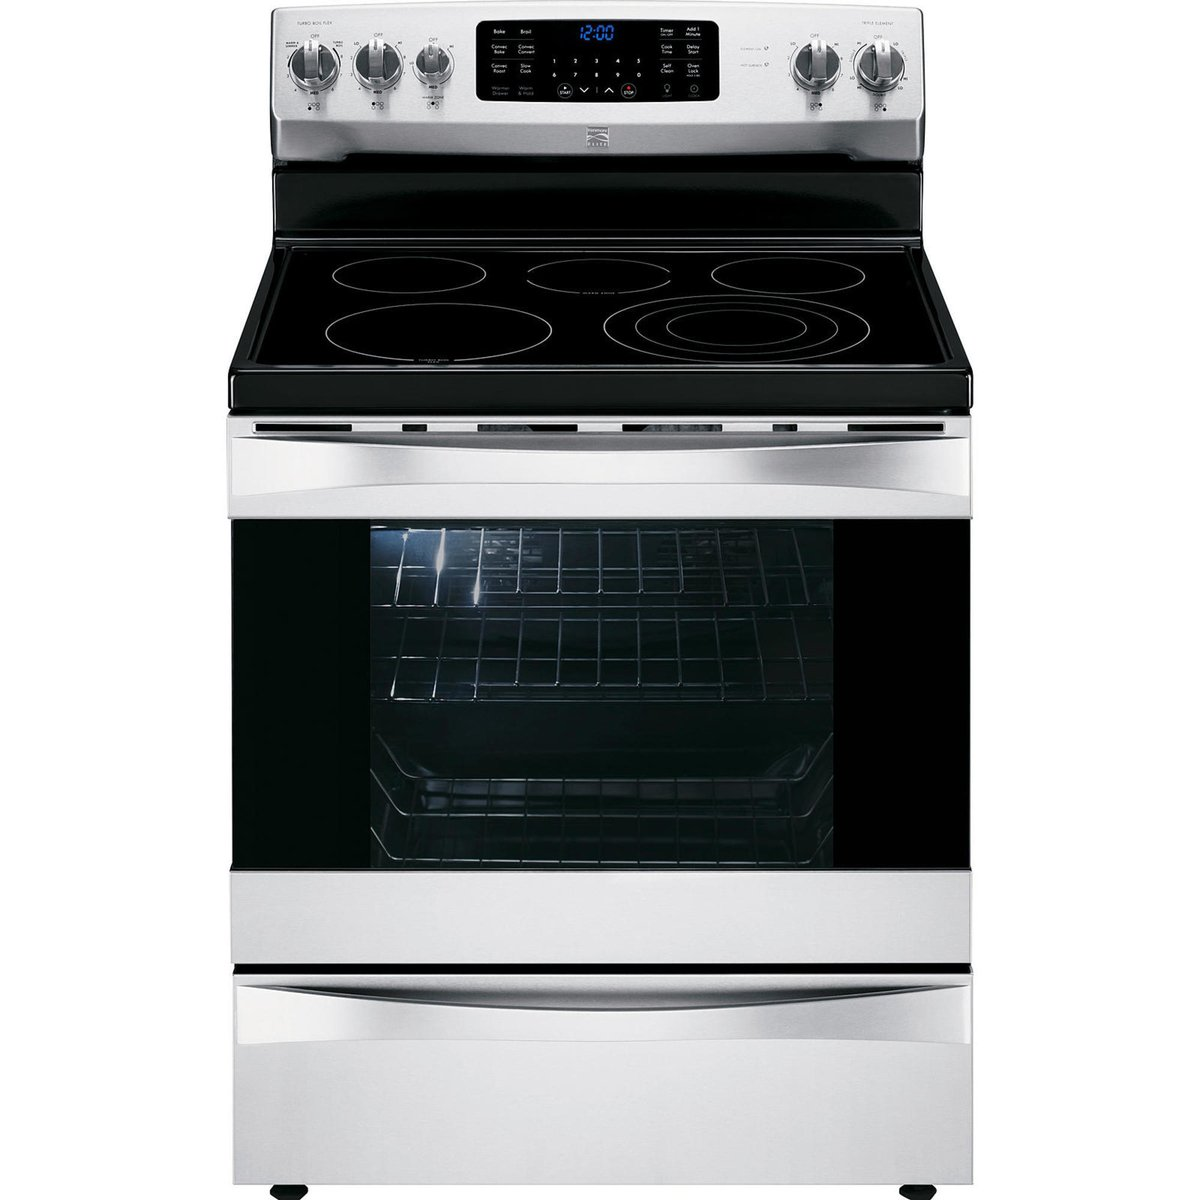 Kenmore Elite 95053 6.1 cu. ft. Electric Range w/ Dual True Convection in Stainless Steel, includes delivery and hookup